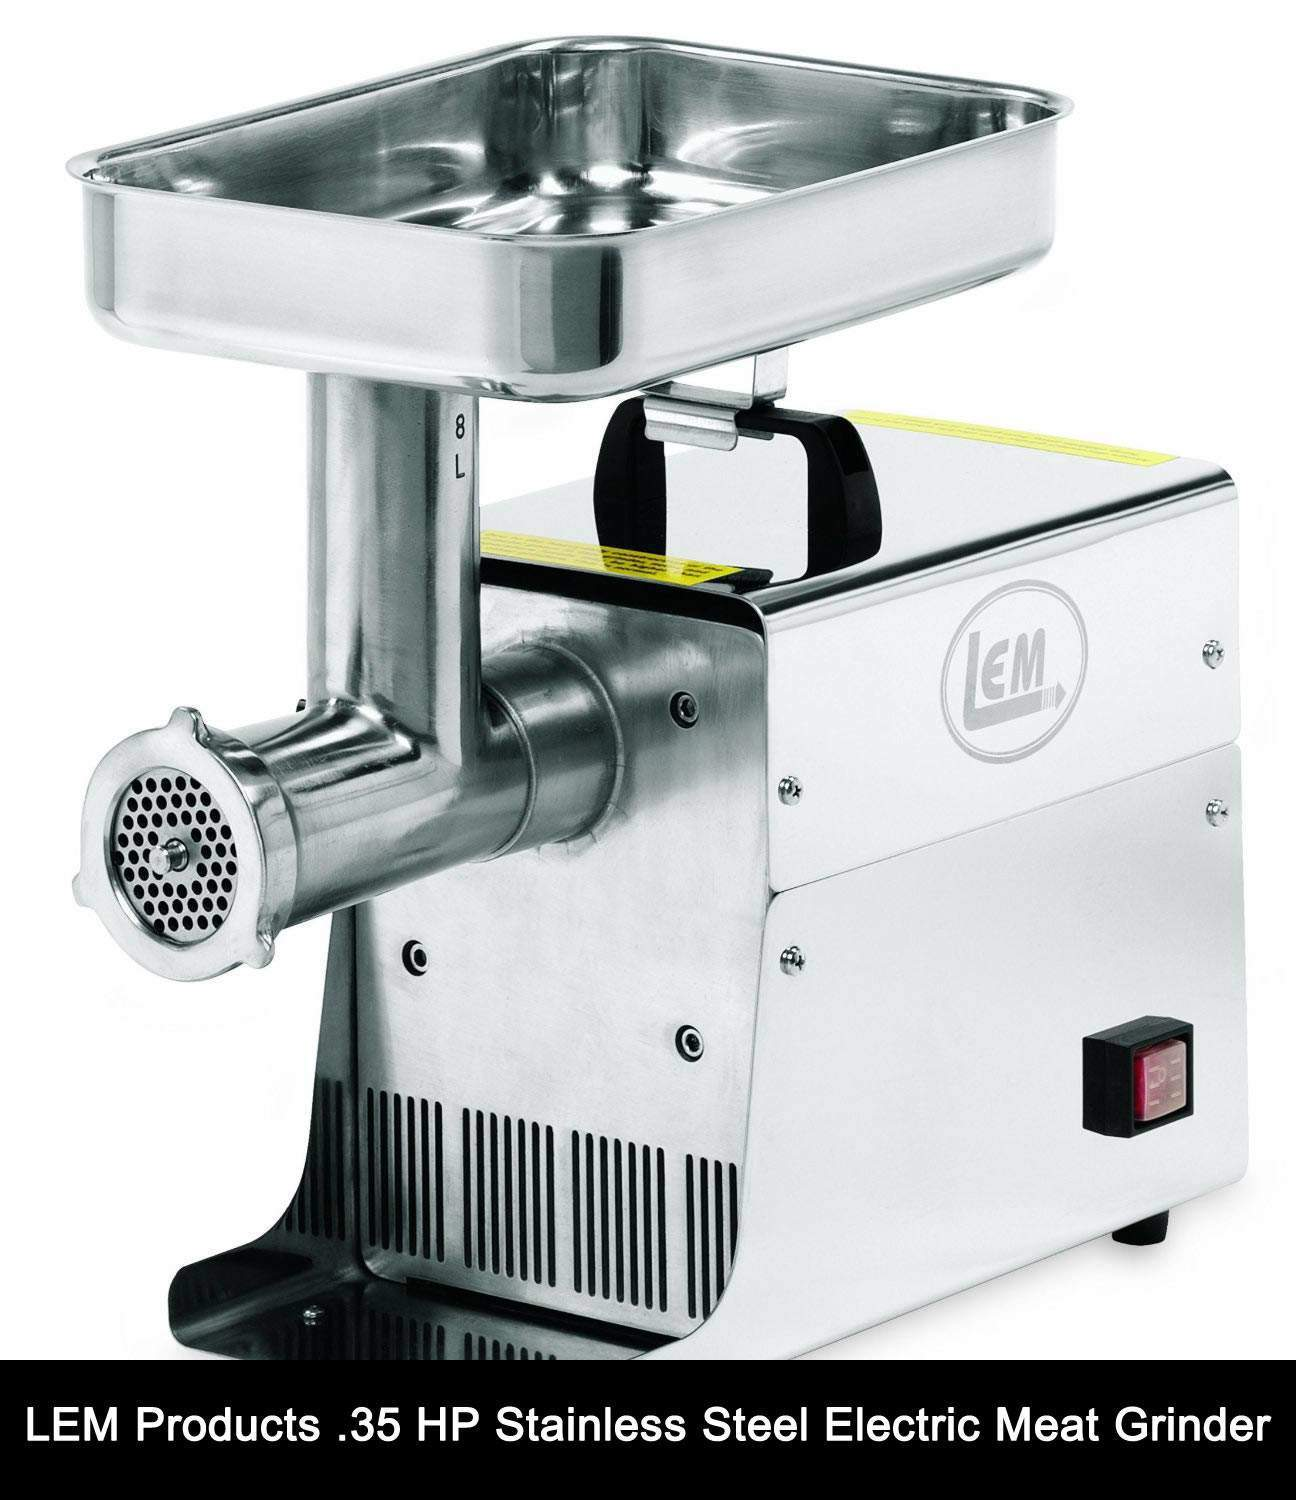 LEM Products .35 HP Stainless Steel Electric Meat Grinder review